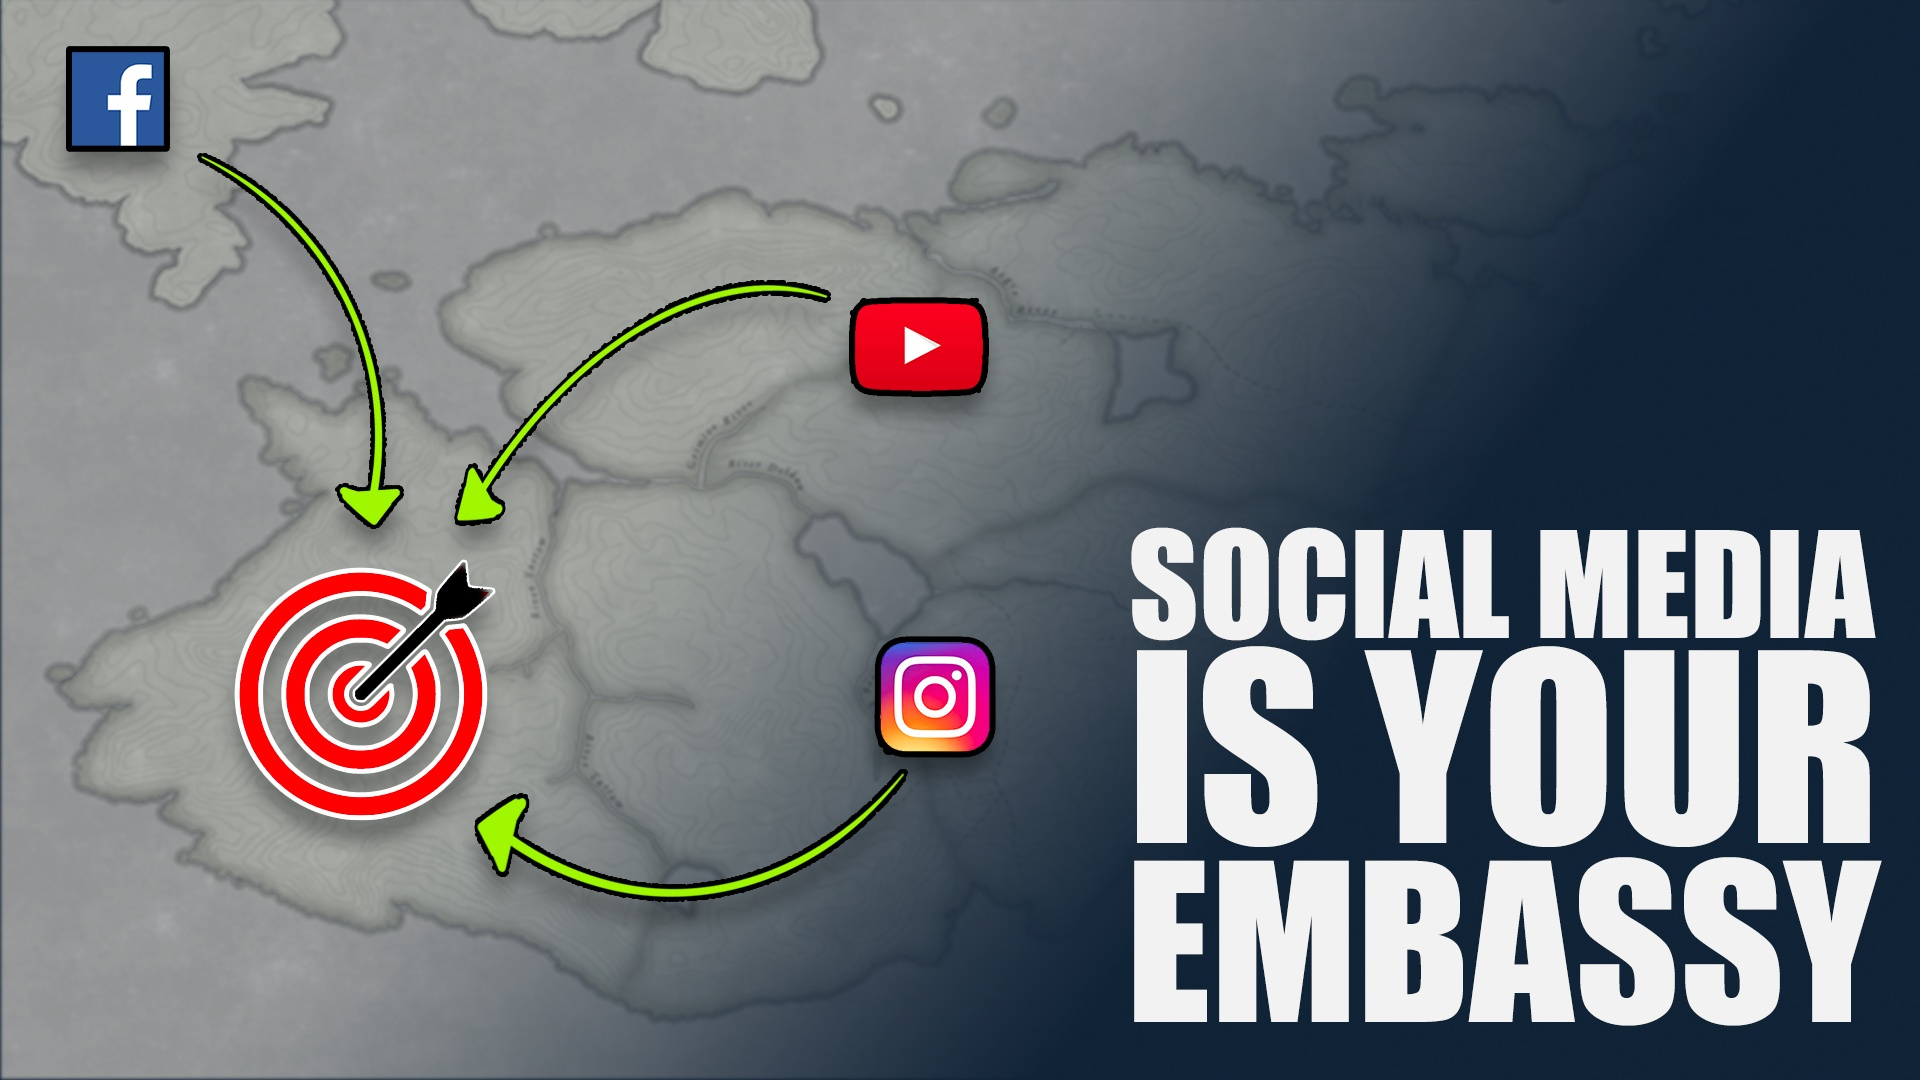 Social Media is Your Embassy